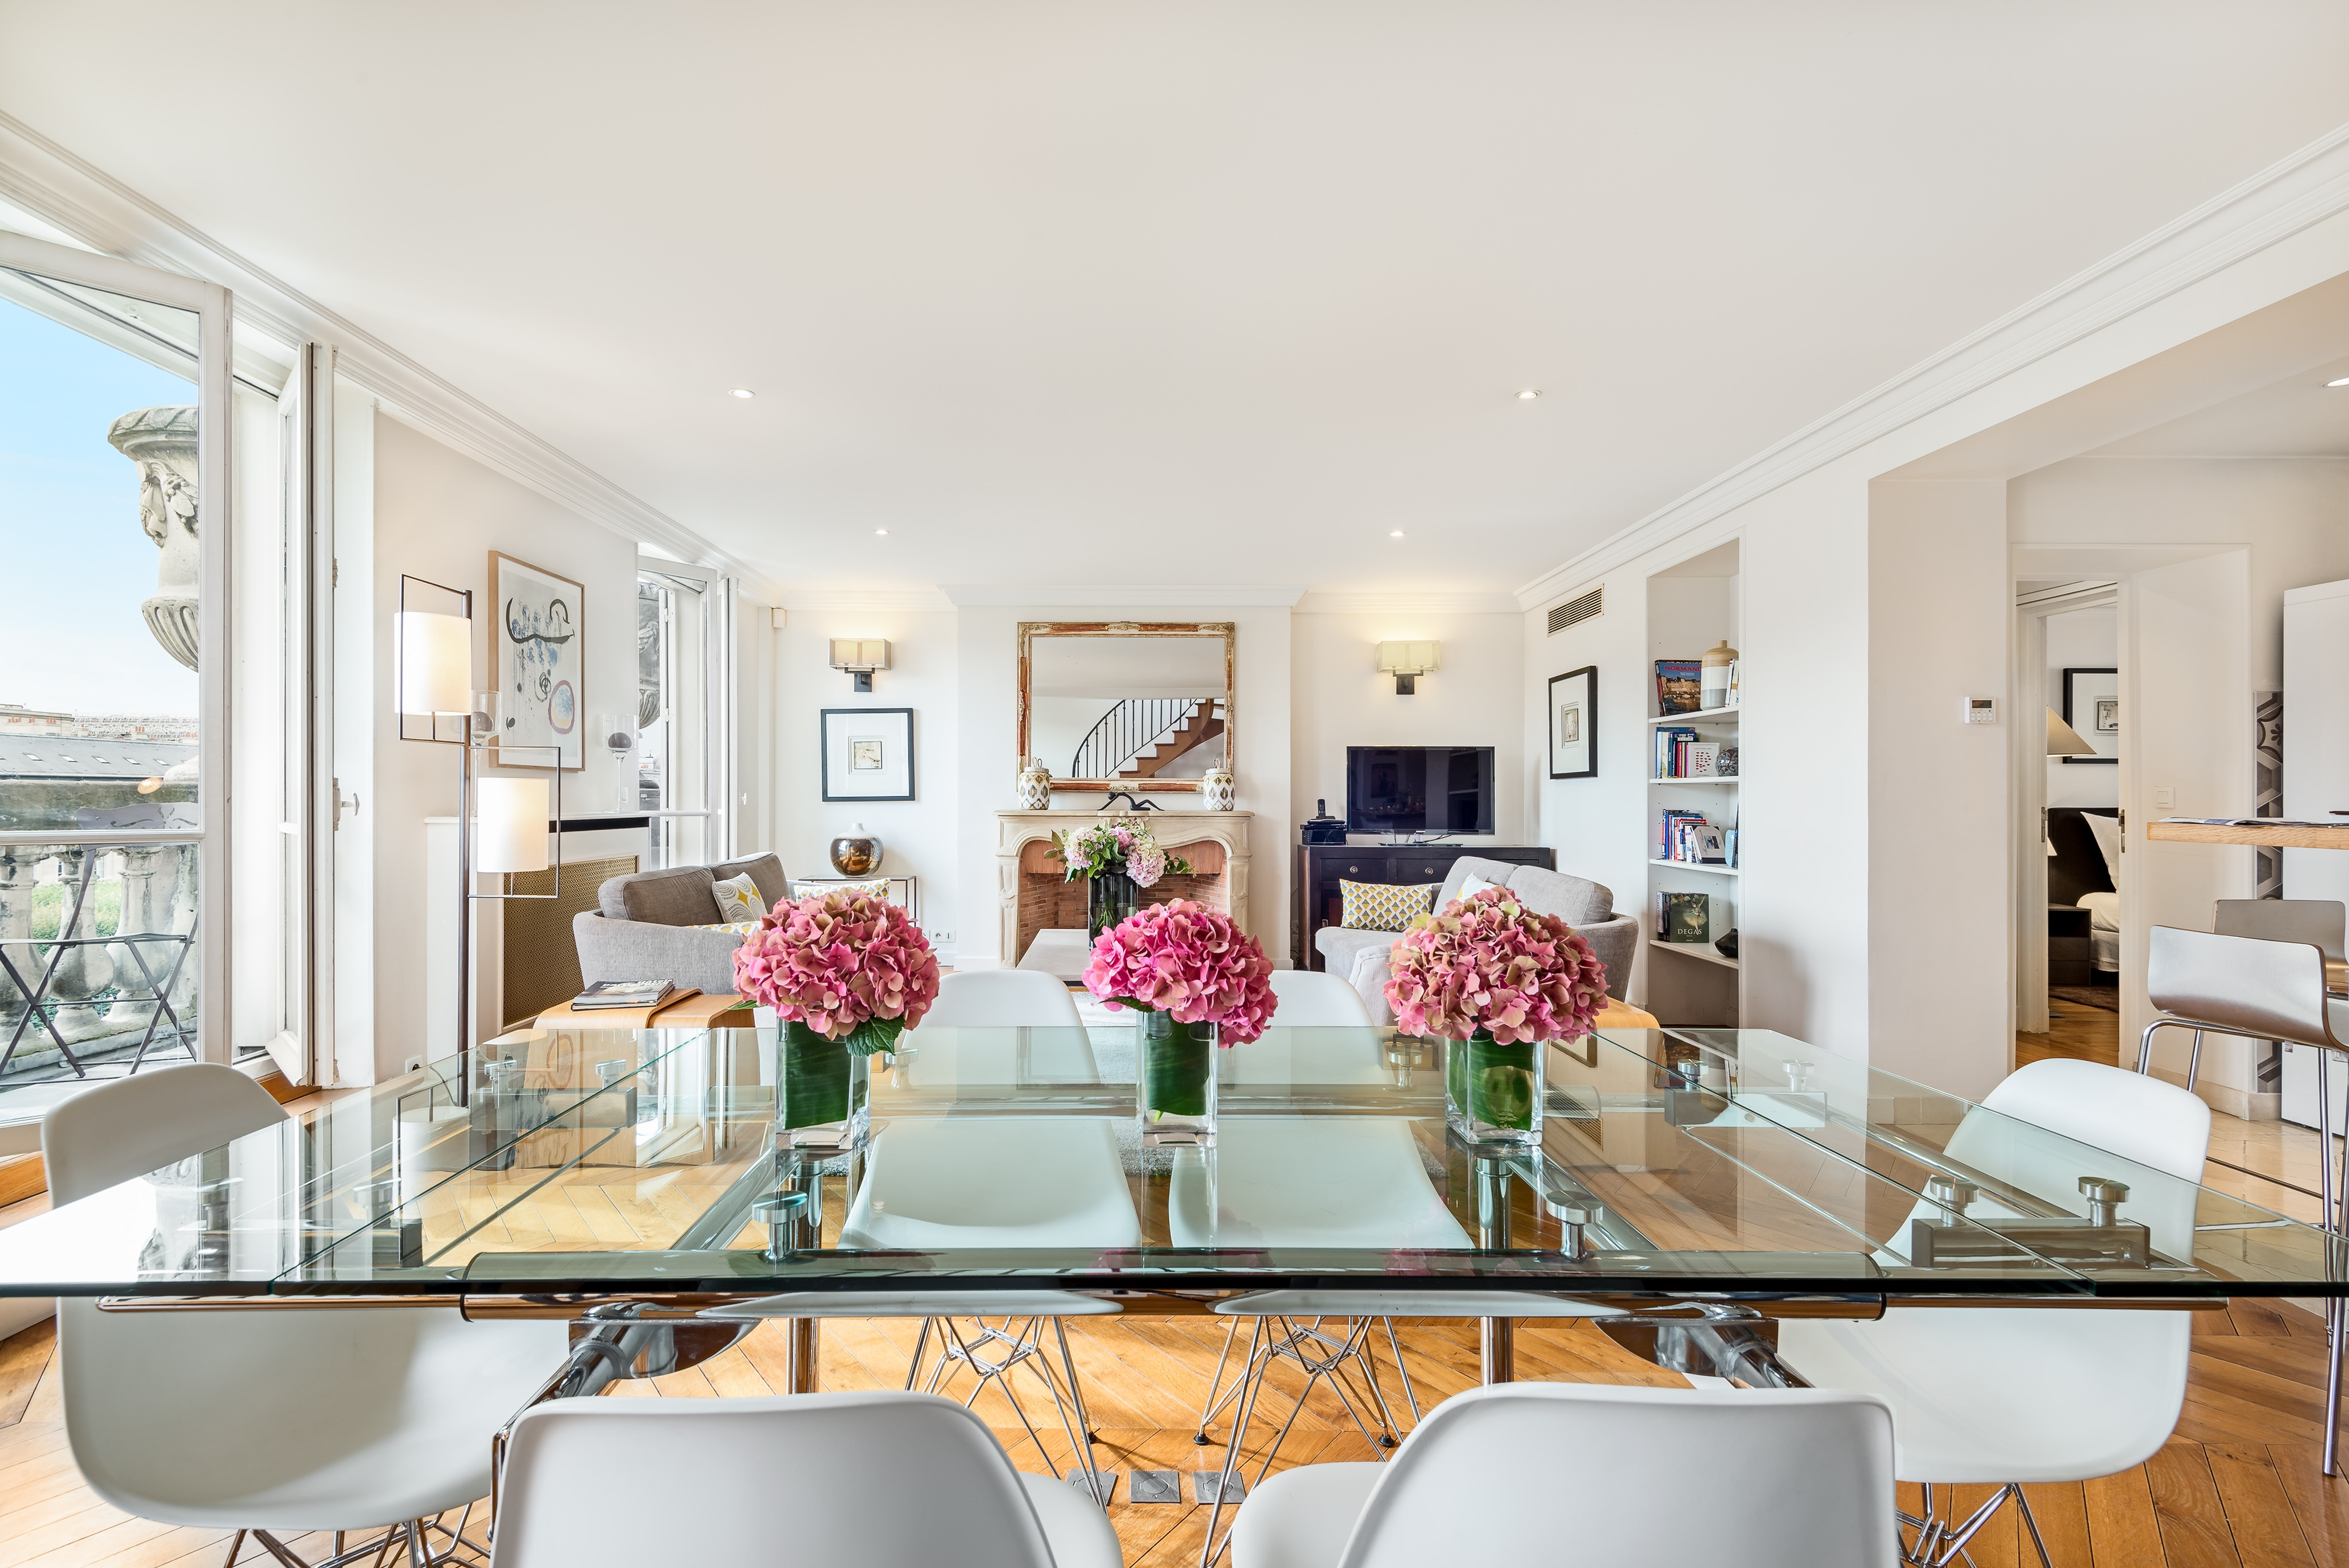 Property Image 2 - Palais Royal Louvre Luxury Three Bedroom Duplex